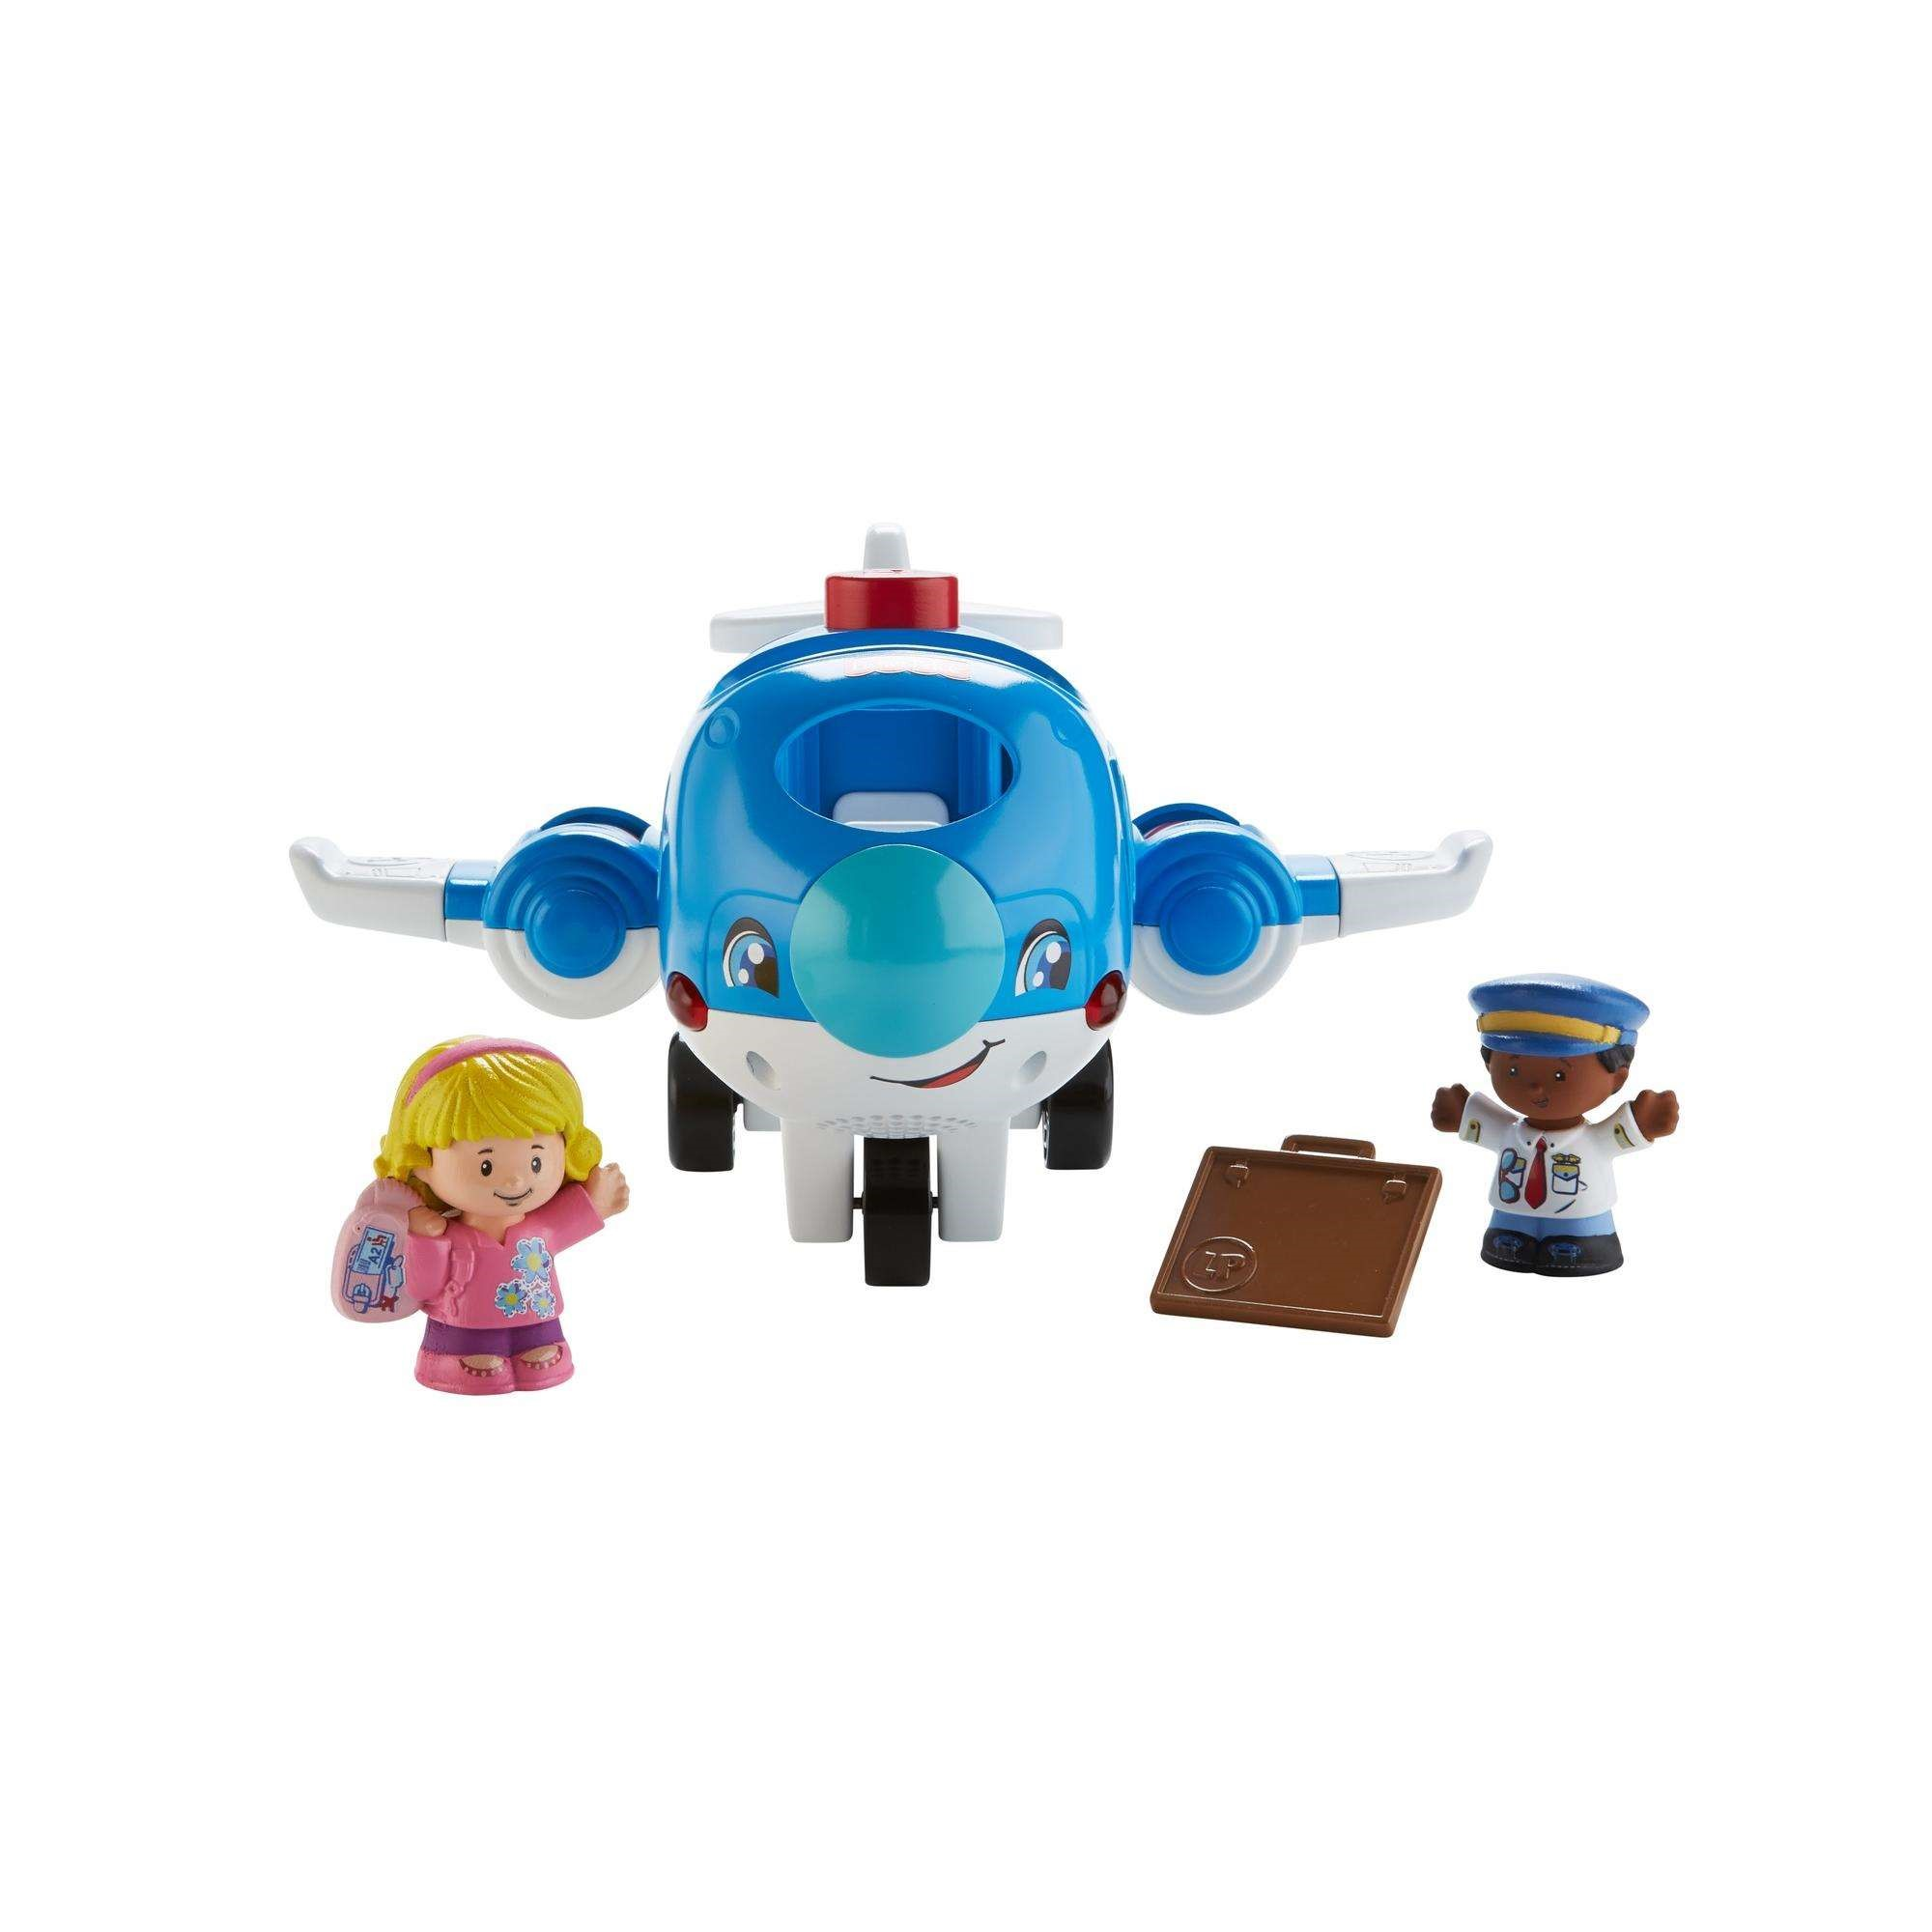 Little People Travel Together Airplane with Pilot Kurt & Emma Figure